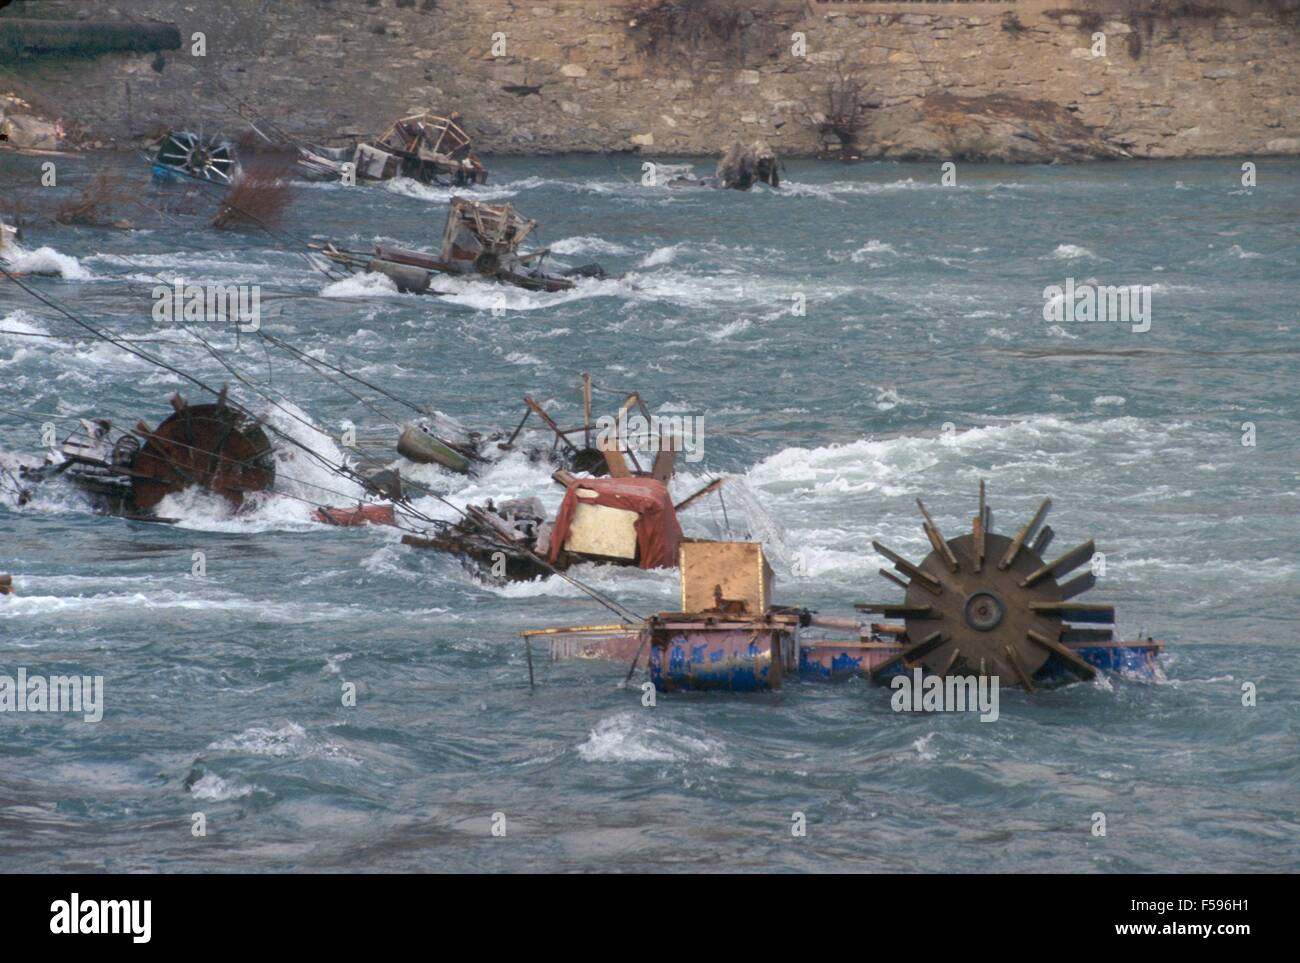 War in ex Yugoslavia, emergency electric power generators set by  Gorazde population in the Drina river during the Stock Photo